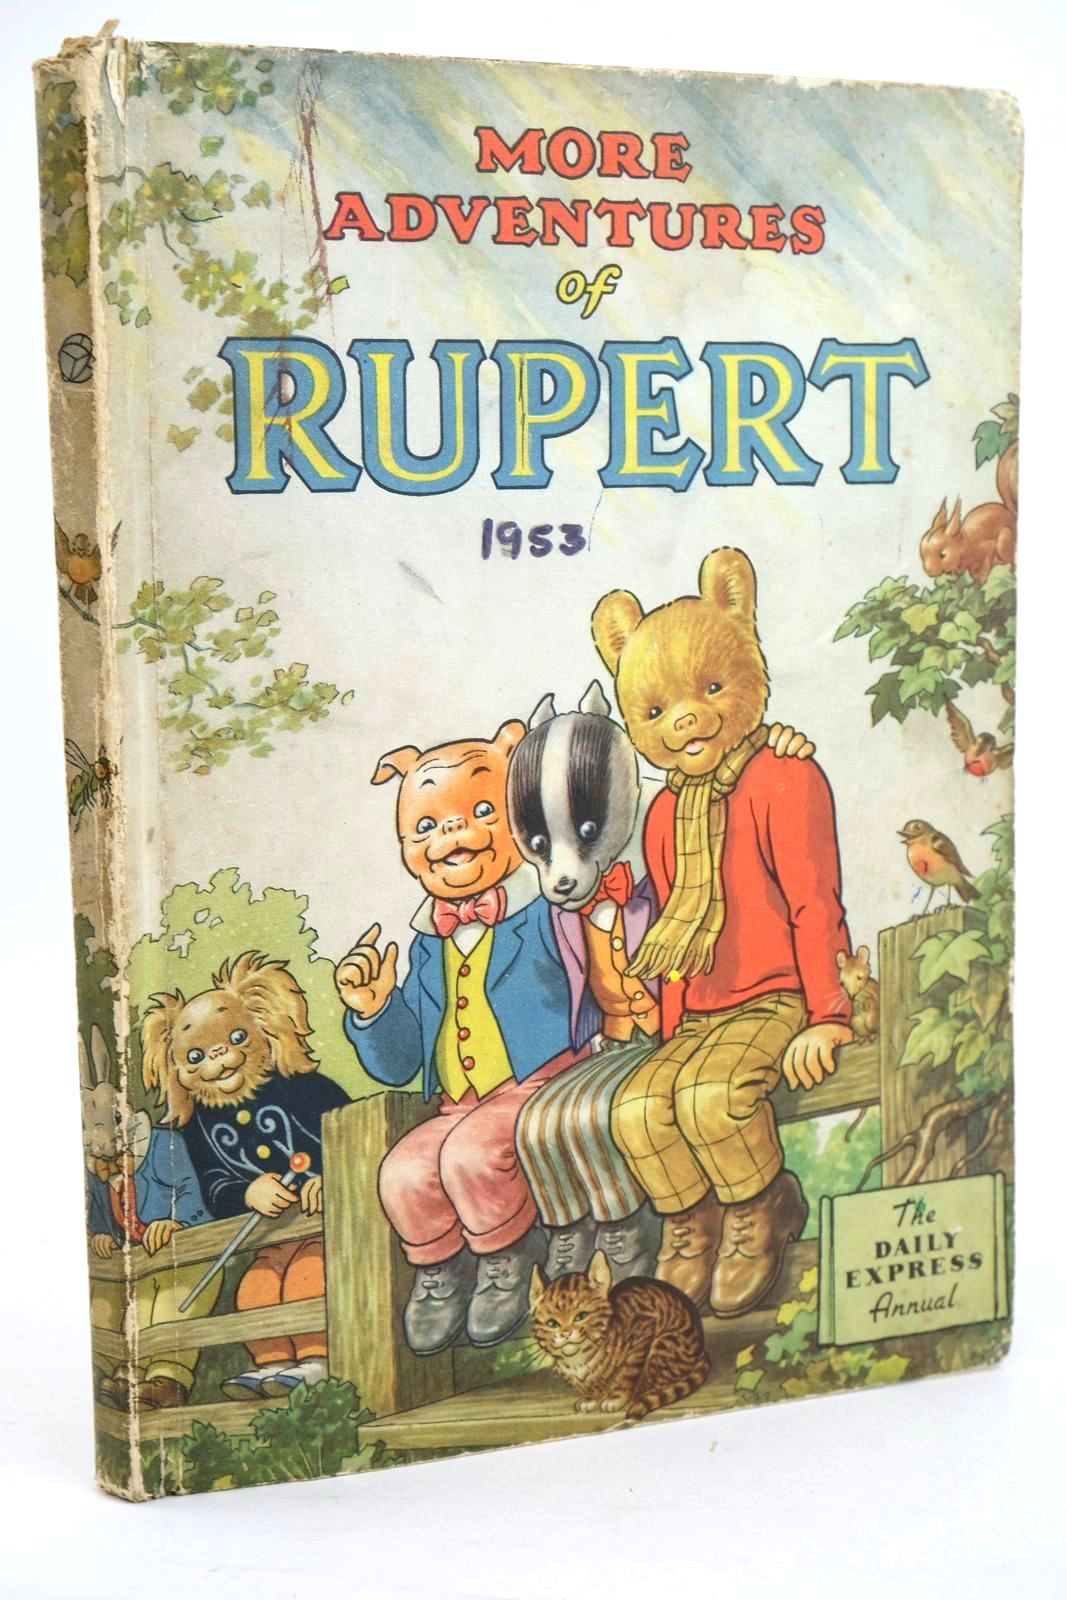 Photo of RUPERT ANNUAL 1953 - MORE ADVENTURES OF RUPERT written by Bestall, Alfred illustrated by Bestall, Alfred published by Daily Express (STOCK CODE: 1319462)  for sale by Stella & Rose's Books